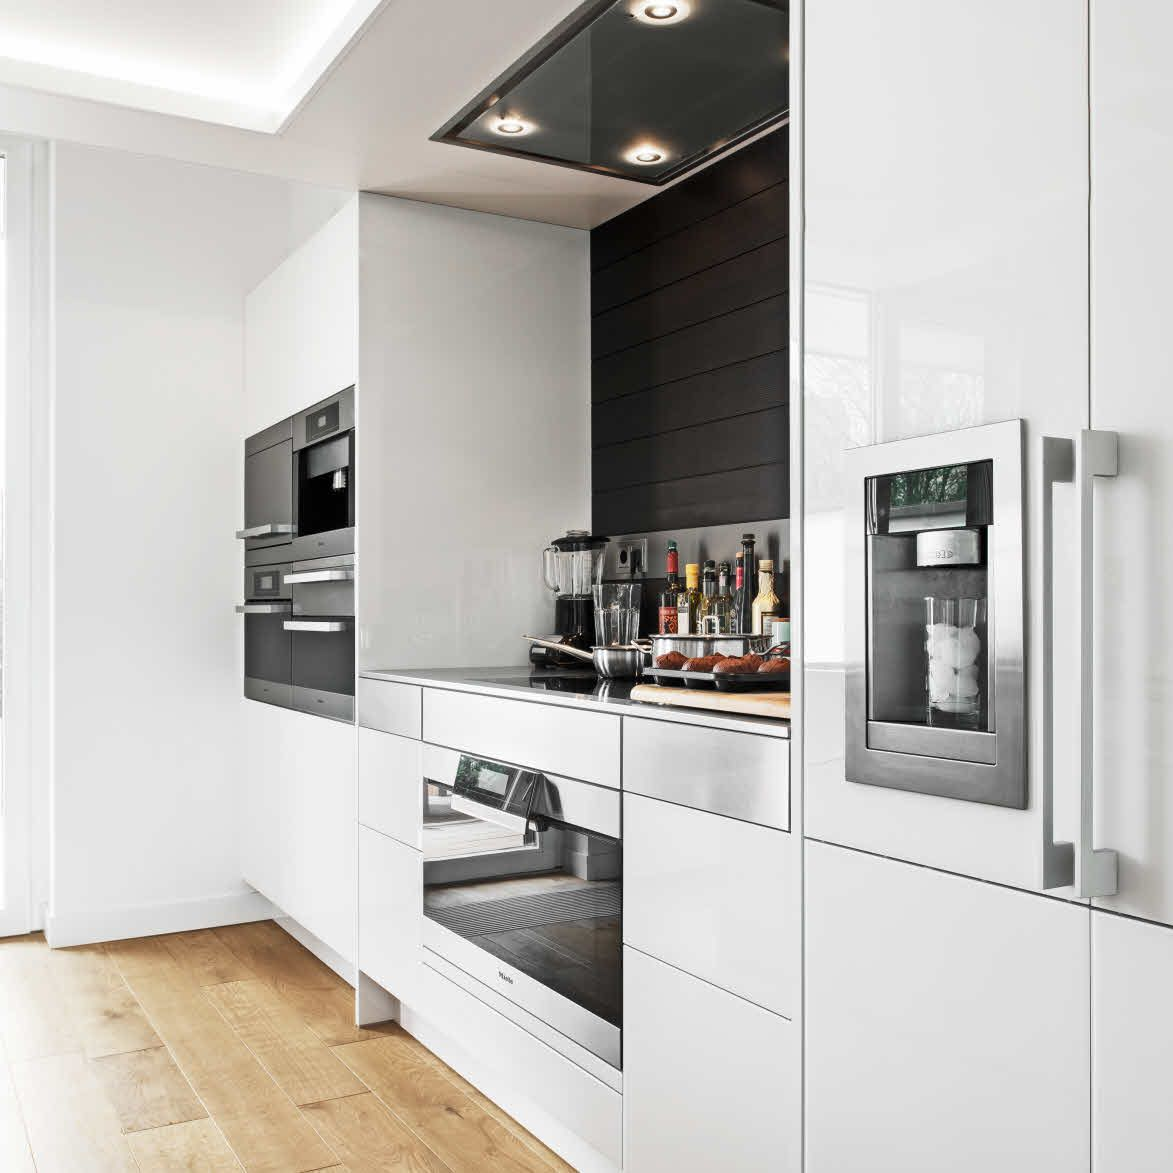 A legacy to some people, accommodate along one line, the ovens, hob ...